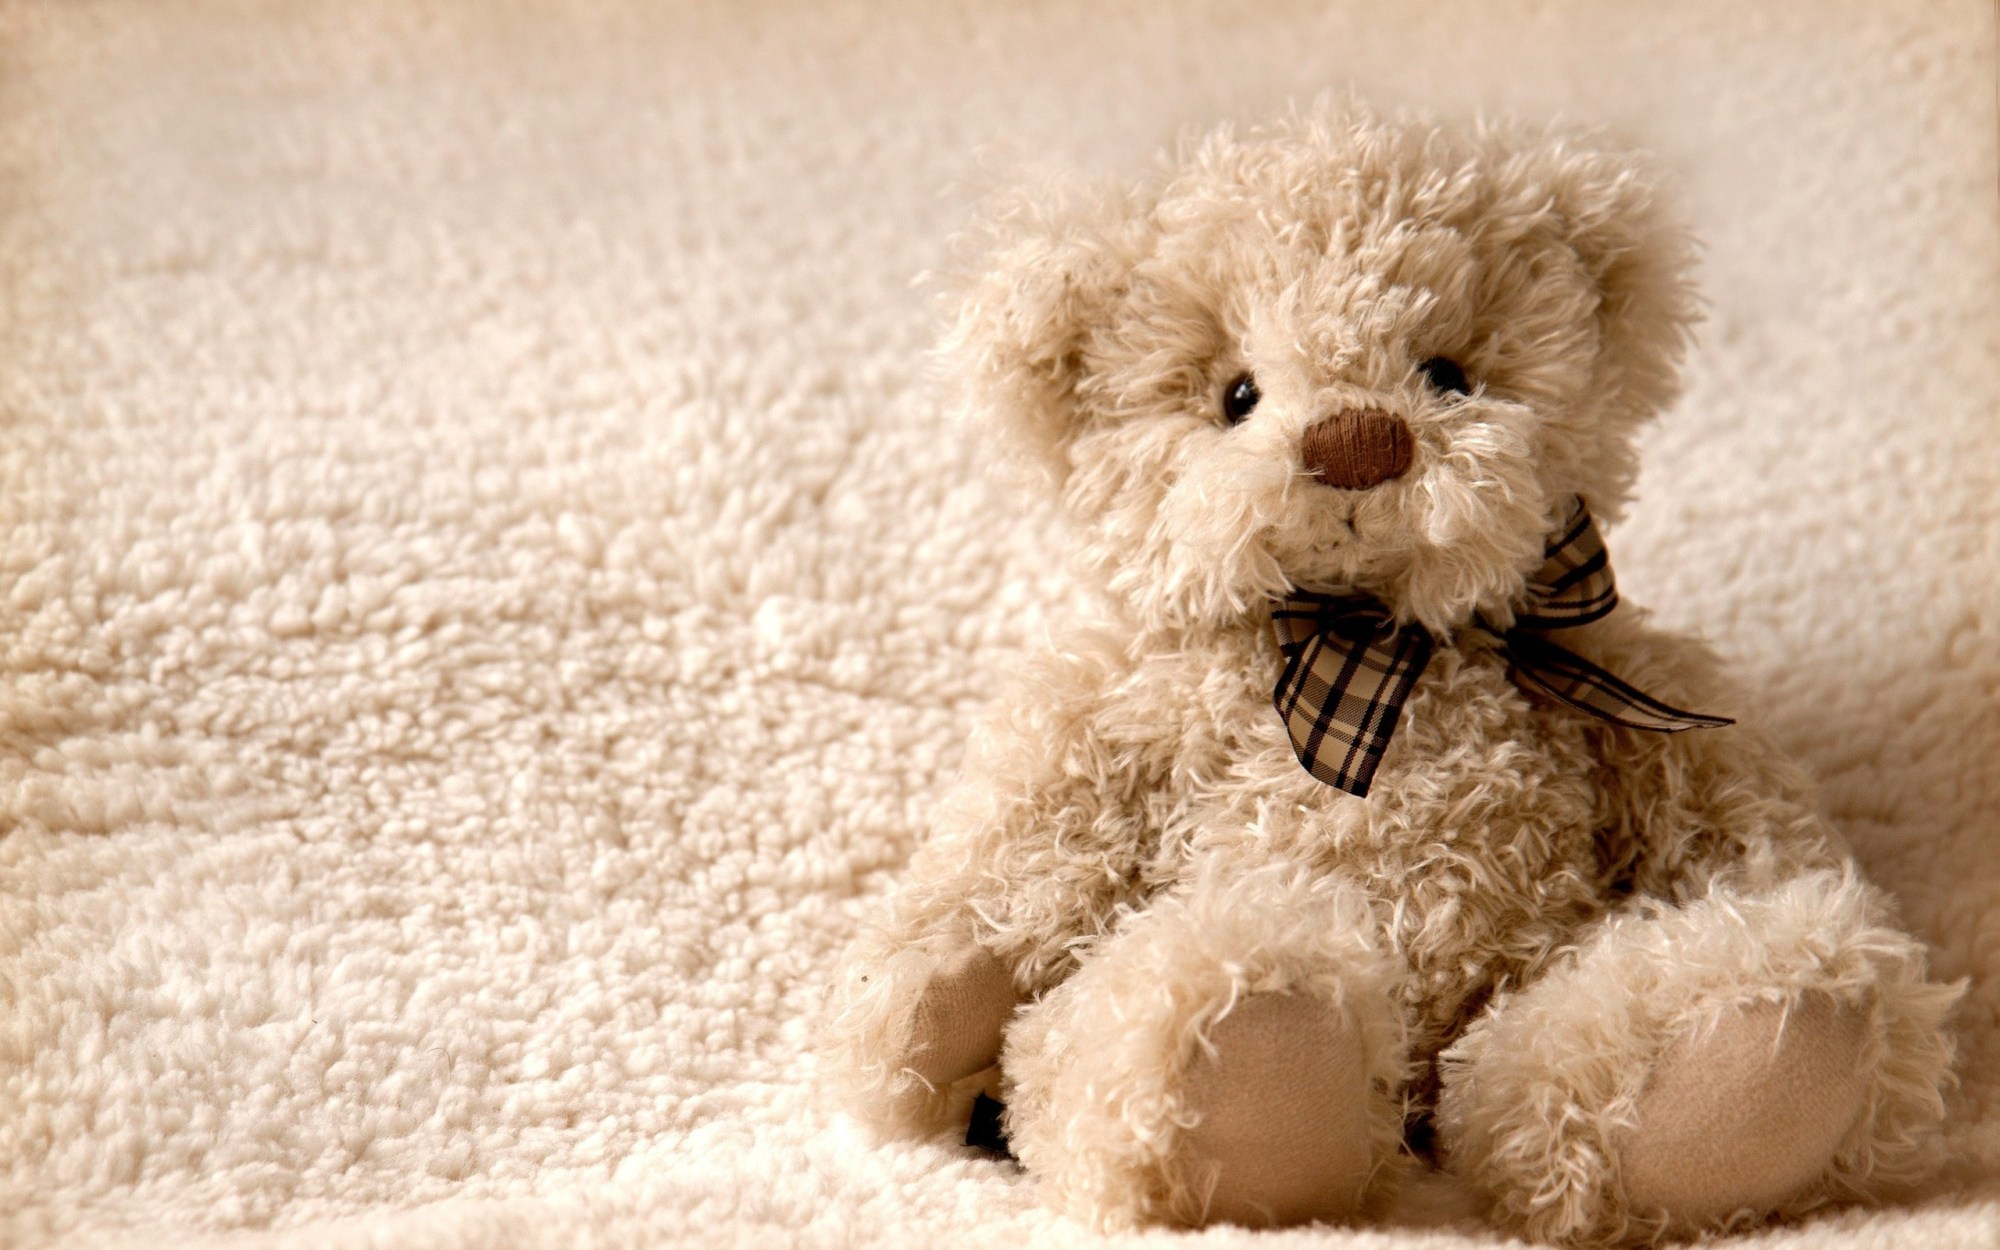 The symbolic meaning of teddy bears whispers channels prophecies the symbolic meaning of teddy bears whispers channels prophecies visions buycottarizona Image collections